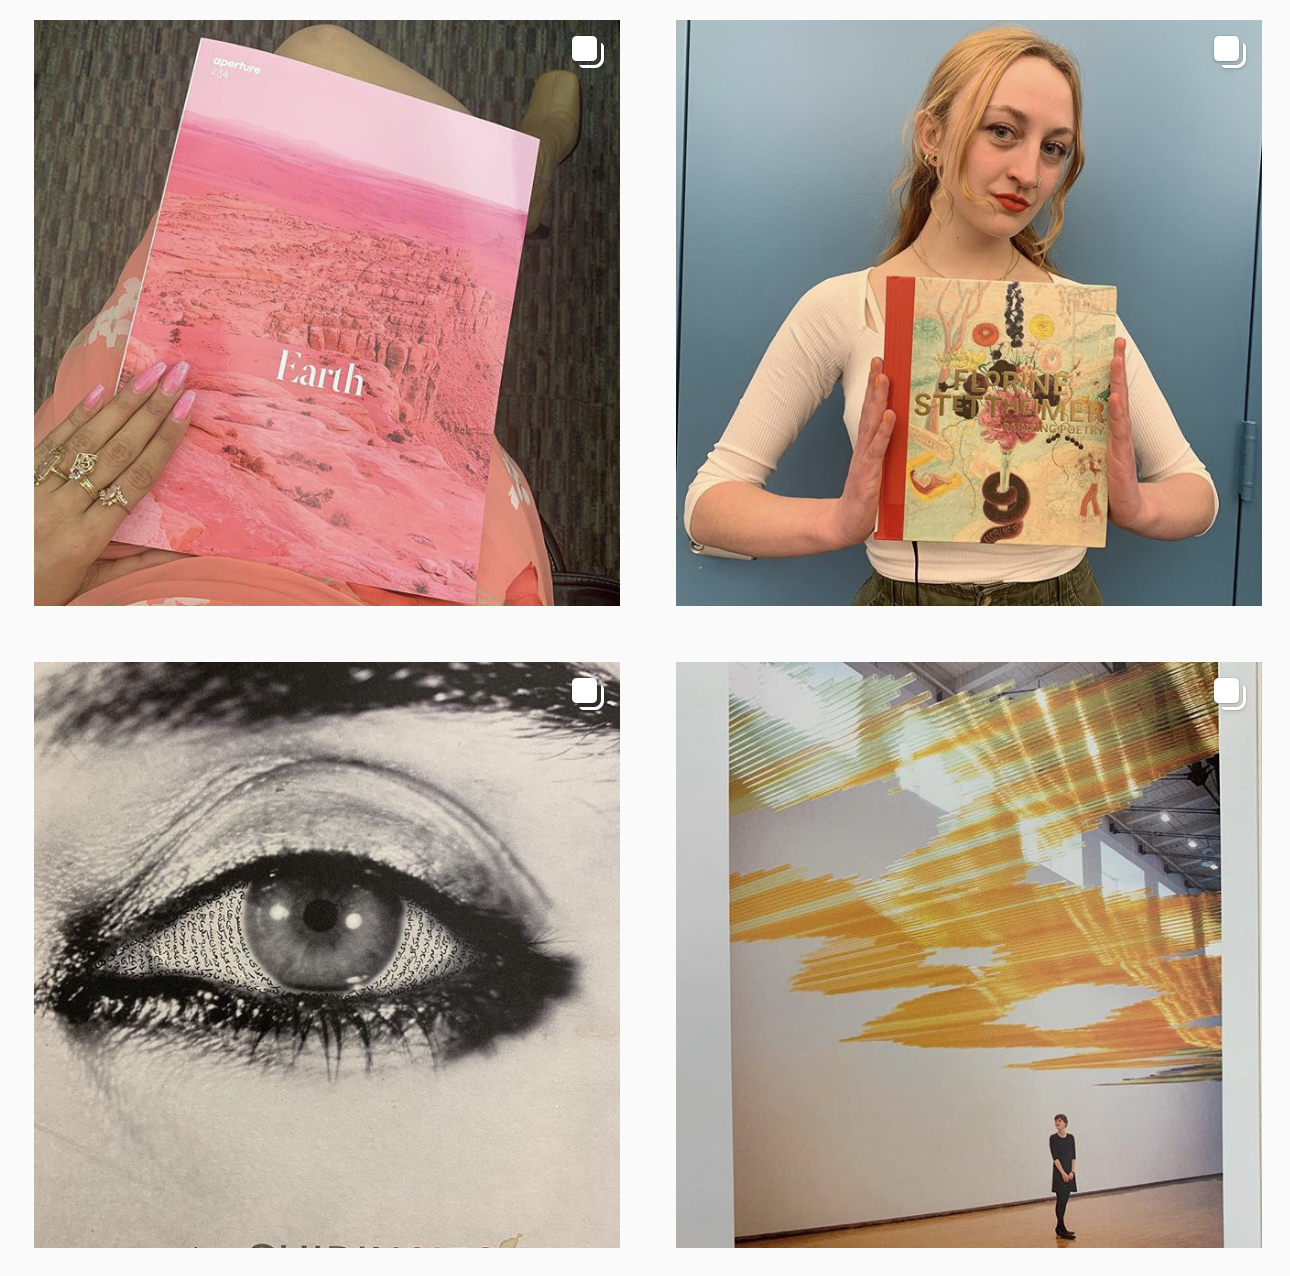 Images from the @SVALibrary Instagram Social Media.